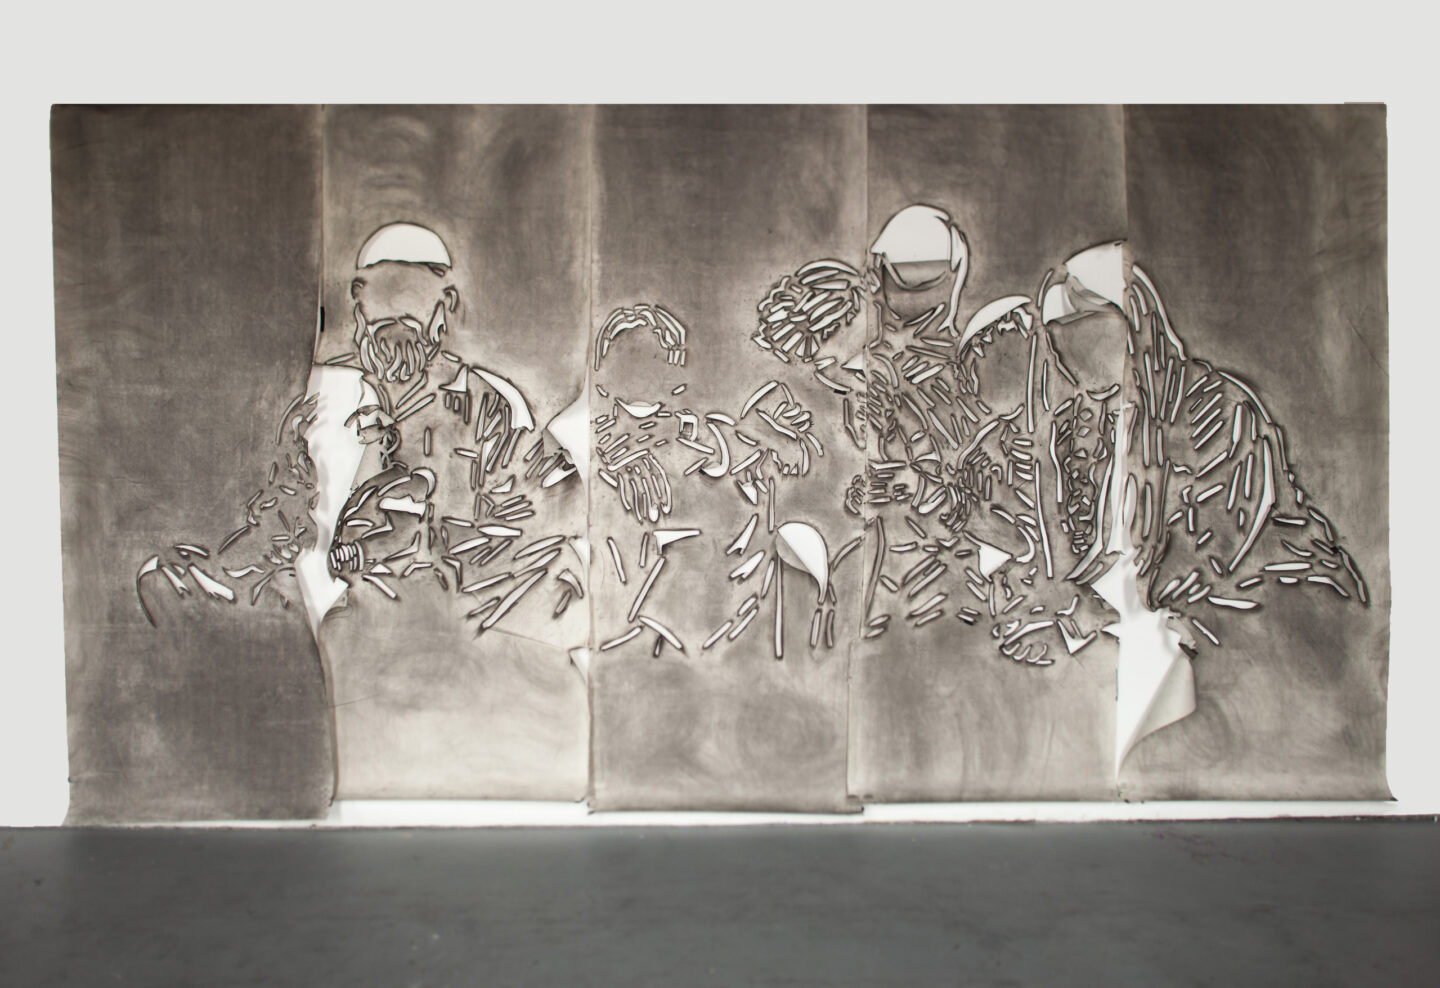 Five panels of paper covered in gray charcoal in which there is a cut stencil of an image of a group of faceless people. The panels have portions of paper that flap and fold.